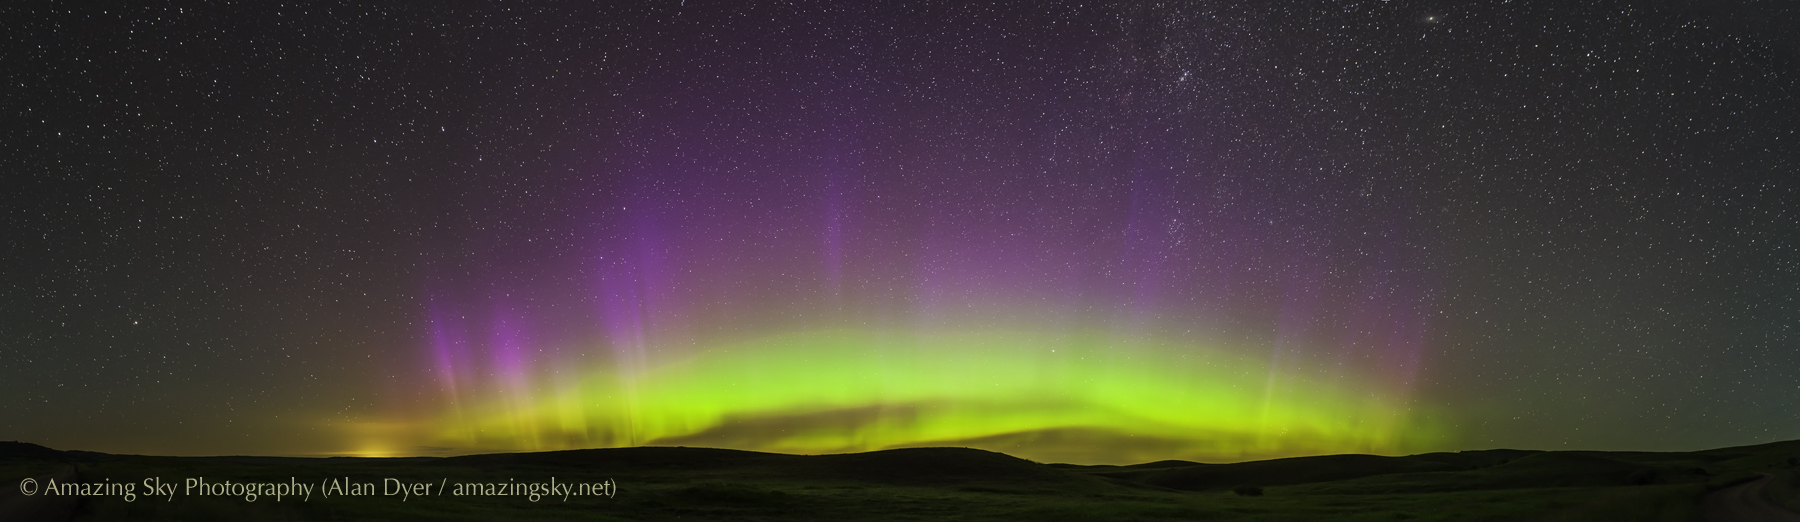 Aurora Panorama #4 from Reesor Ranch (July 13, 2013)